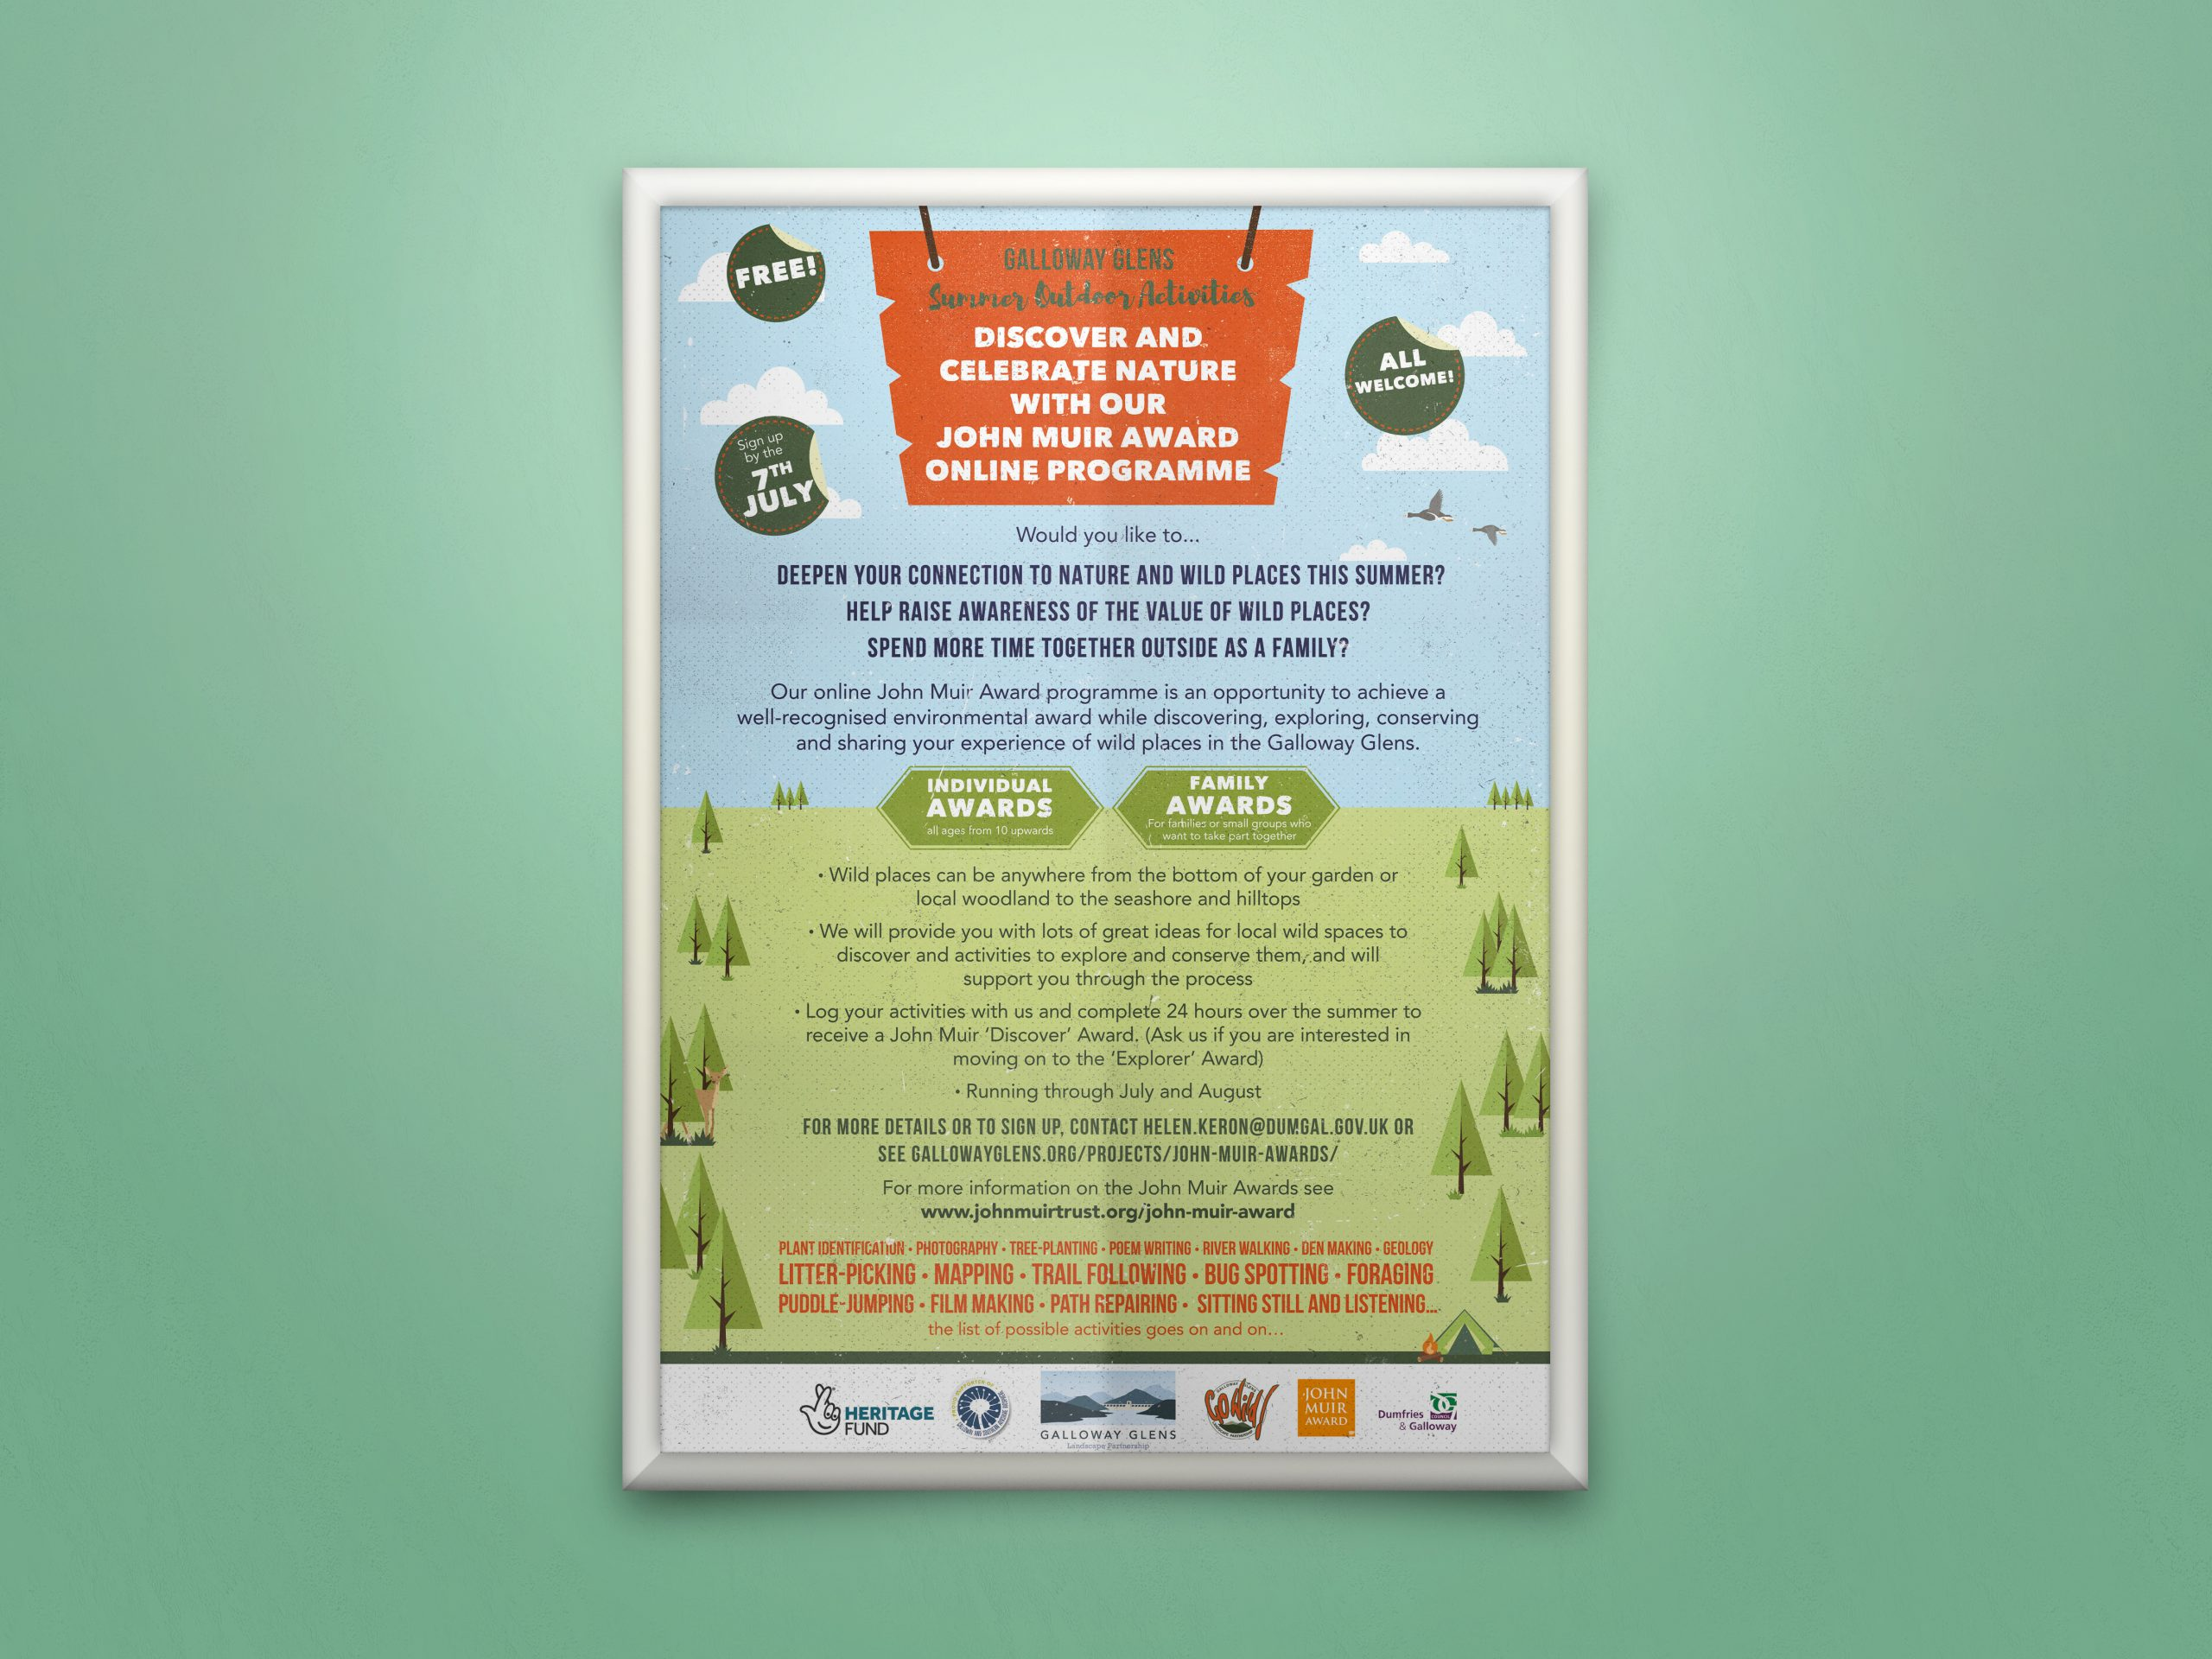 Image of a poster with a woodland theme promoting the John Muir Awards Program